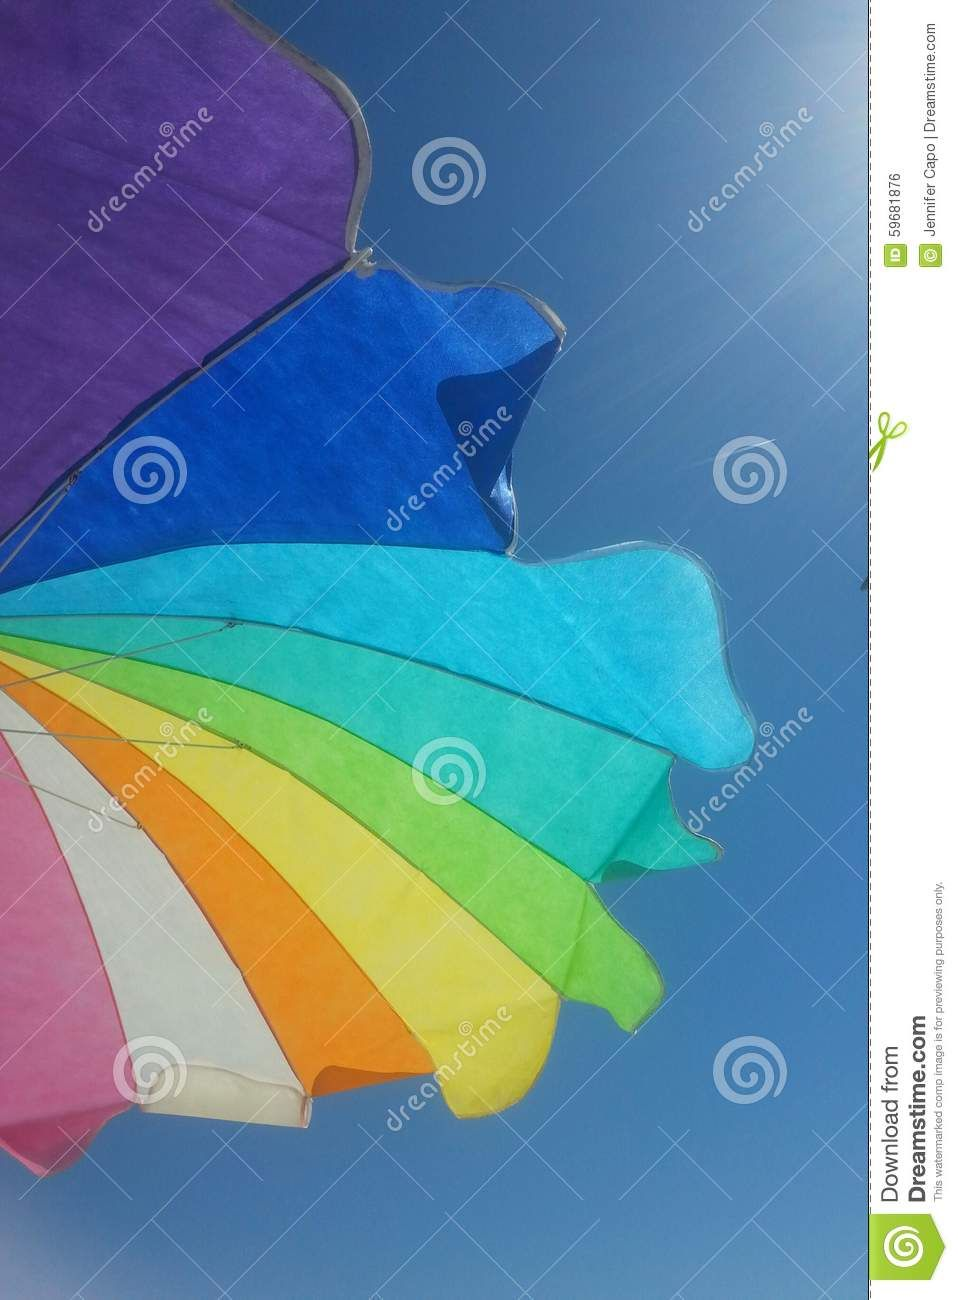 Colorful Beach Umbrella - Download From Over 36 Million High Quality Stock Photos, Images, Vectors. Sign up for FREE today. Image: 59681876